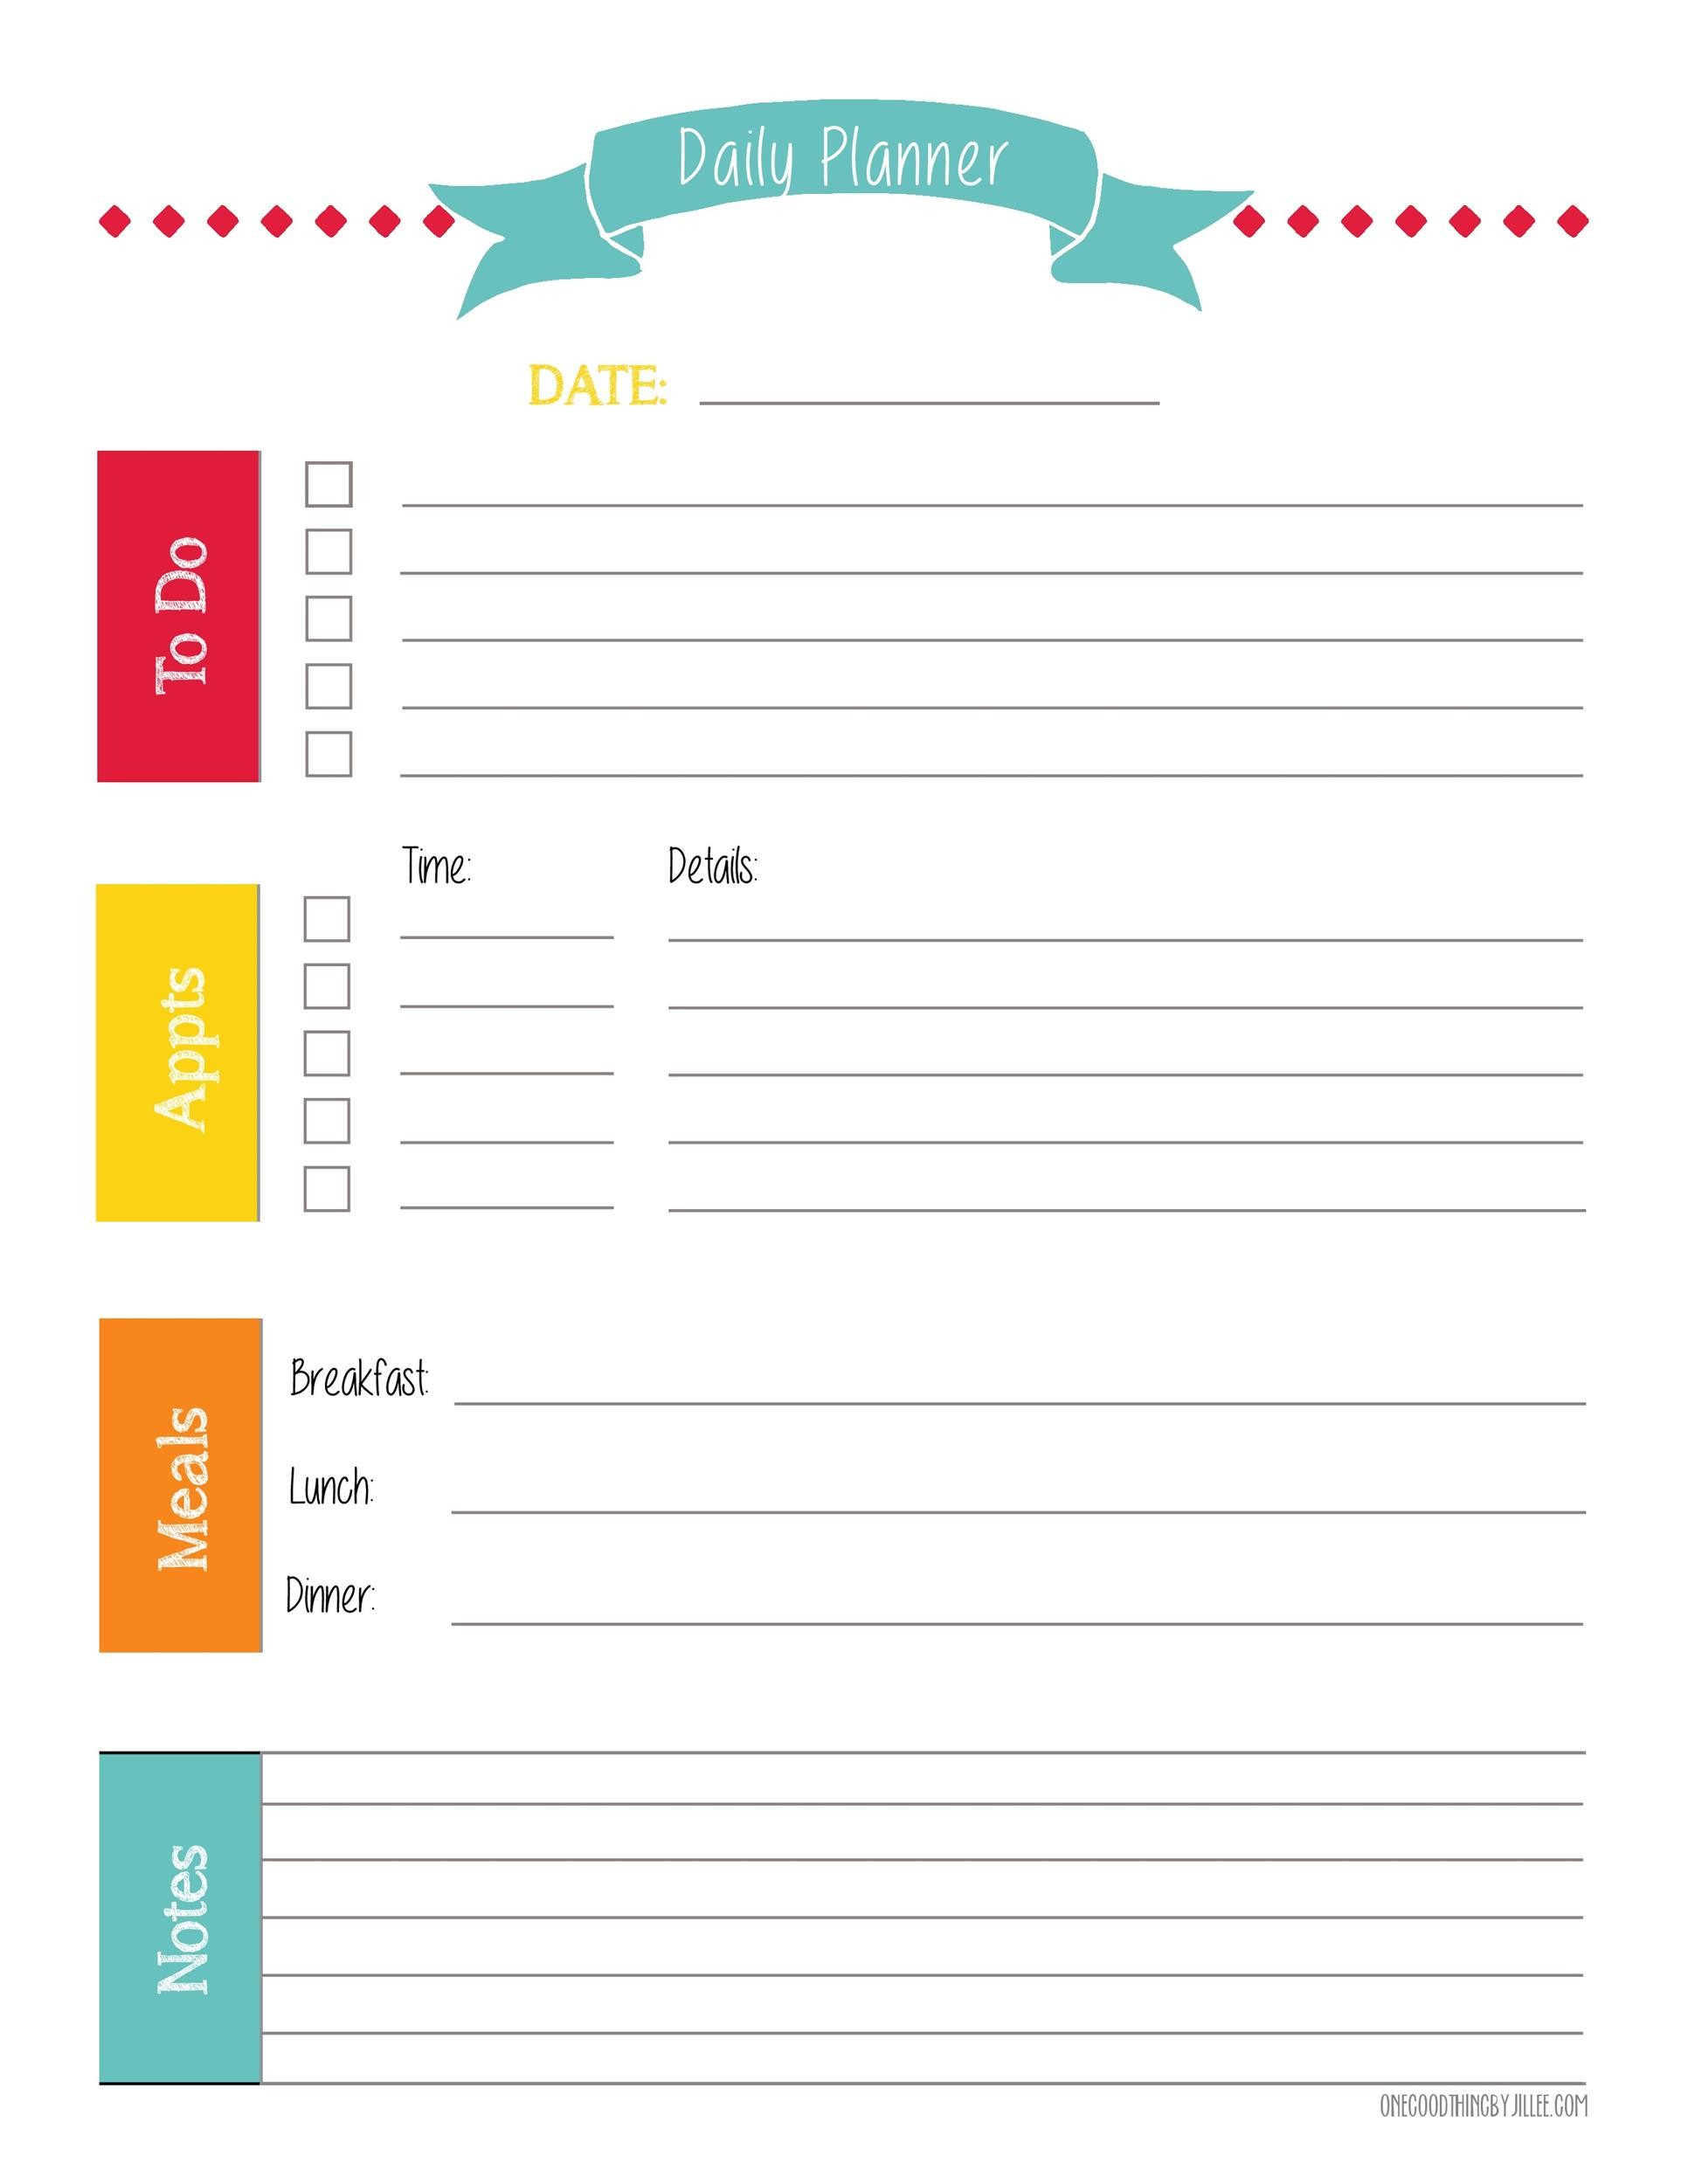 40 printable daily planner templates free template lab for Office planner online